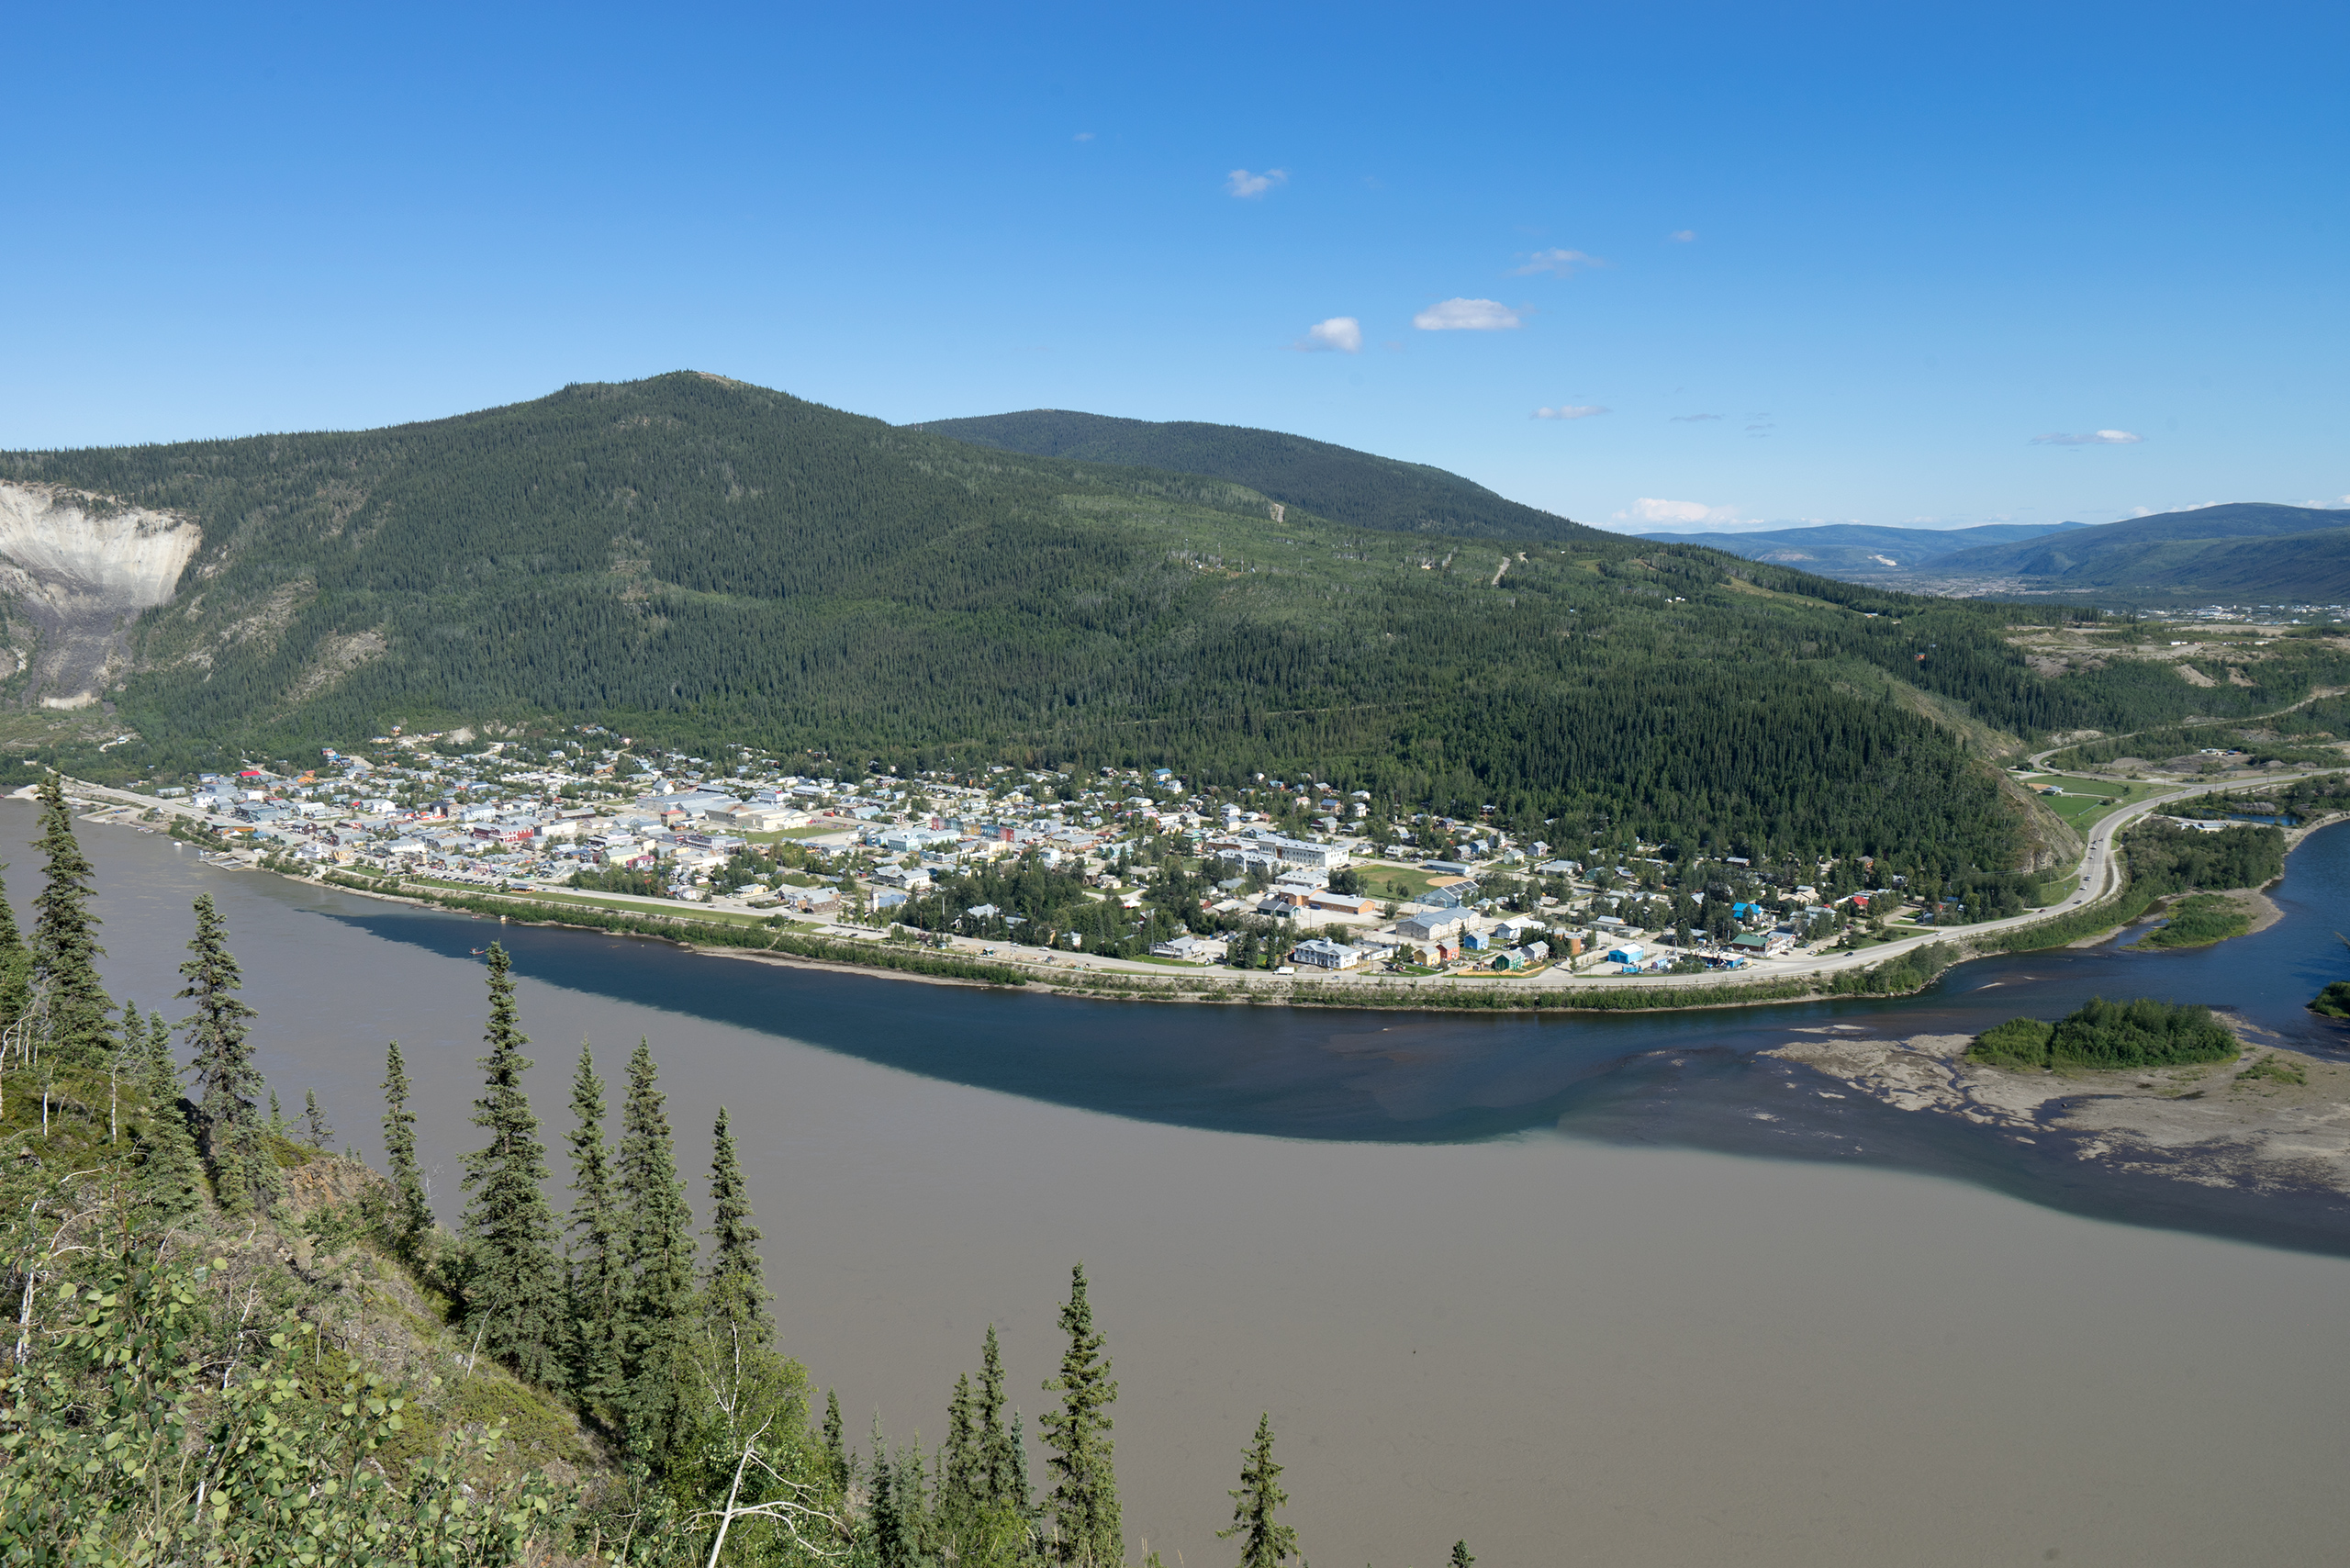 Dawson City and the confluence of the Klondike River (dark, clean) and Yukon River (light, muddy) | Photo: Matthias Ries